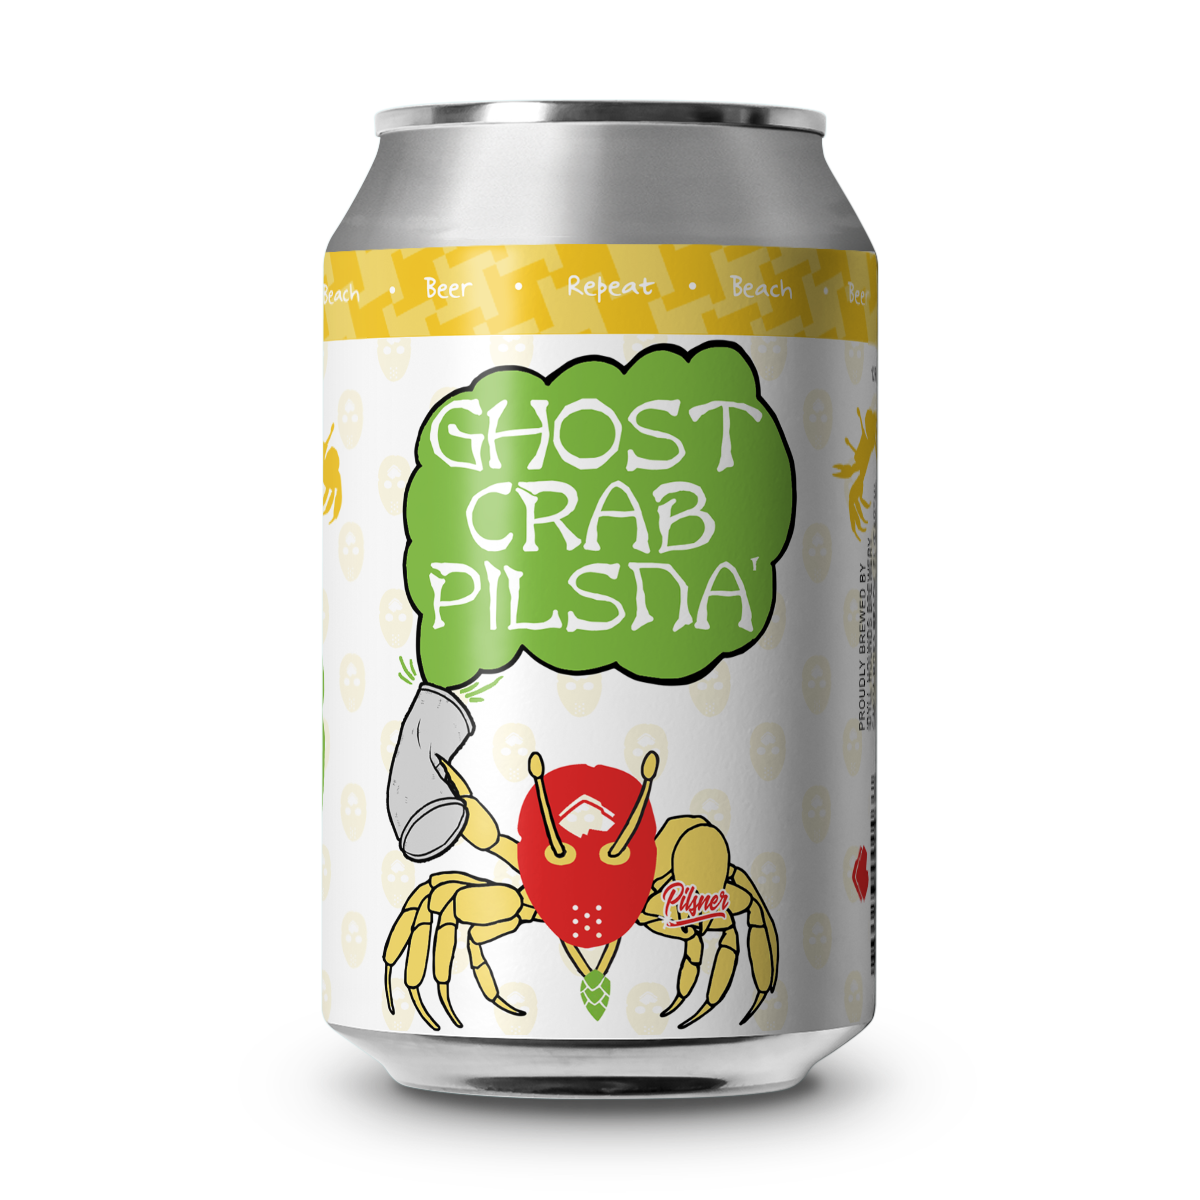 https://www.idyllhoundsbrewingcompany.com/wp-content/uploads/2021/02/Ghost-Crab-Can-Iso.png